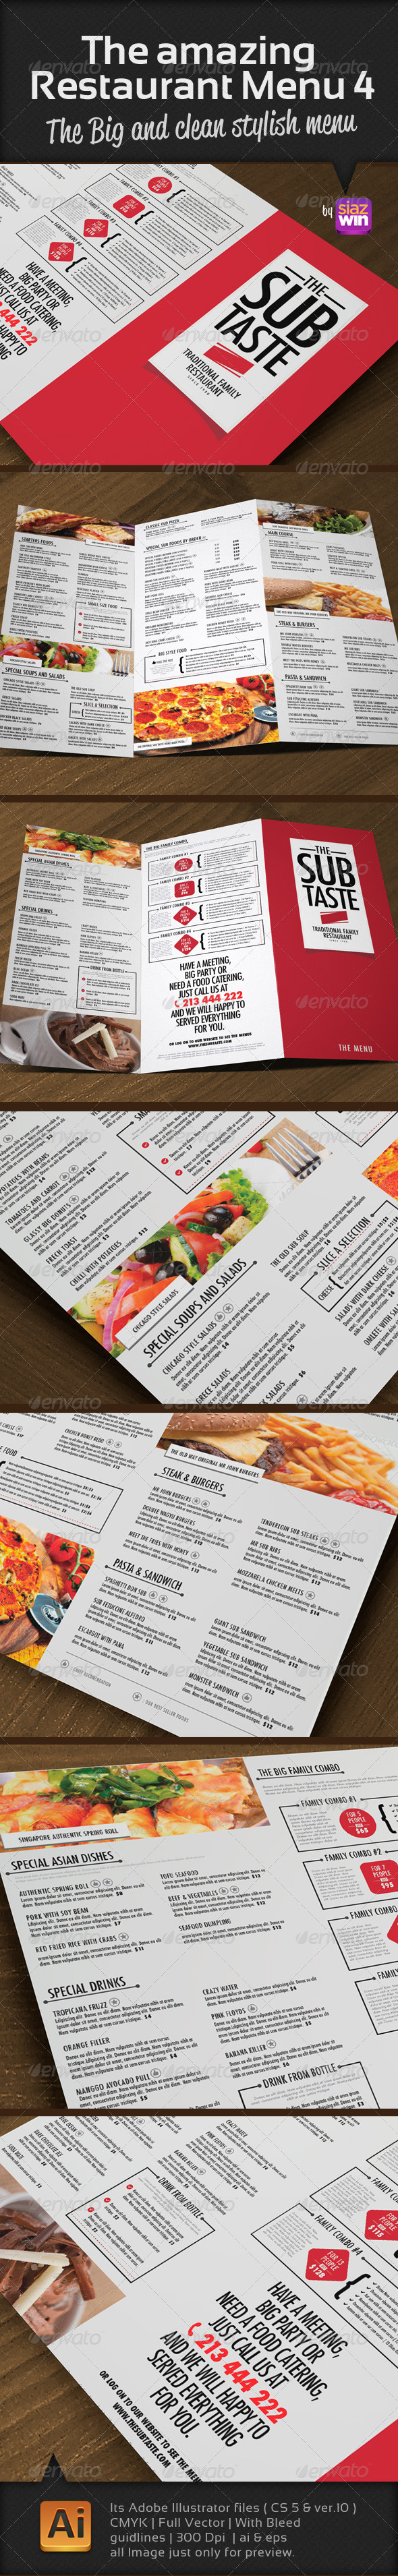 The Amazing Restaurant Menu 4  - Food Menus Print Templates